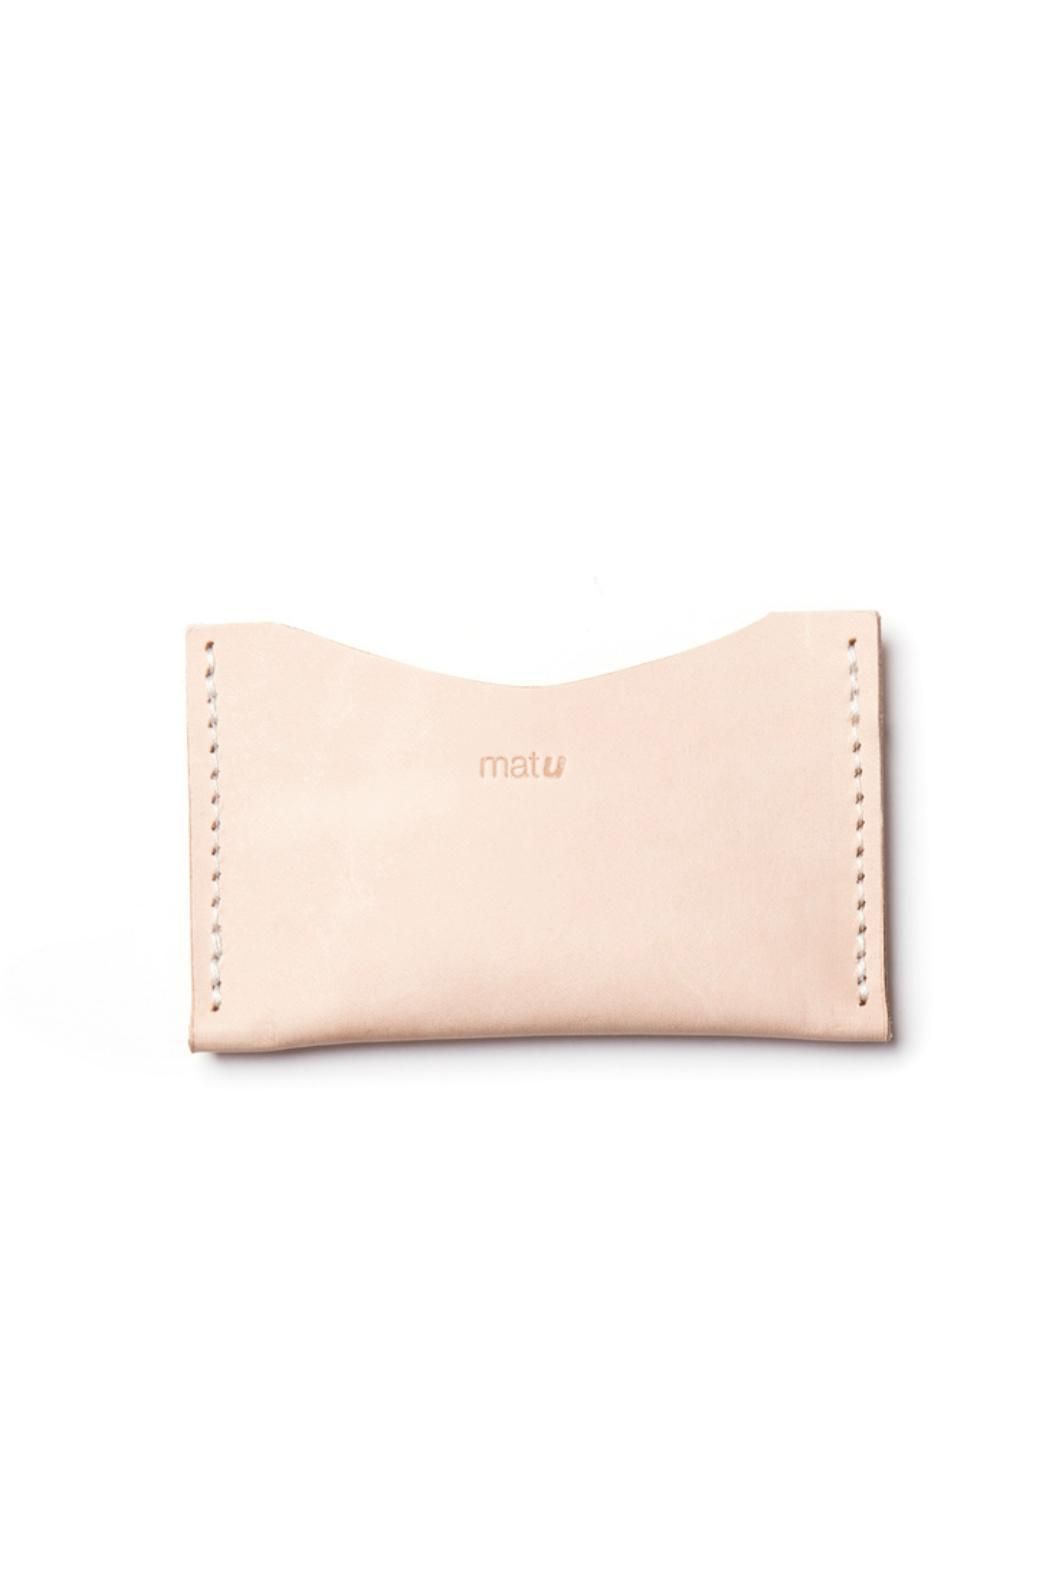 Matu leather card holder tan leather dark and leather next time you pull out a business card use this functional card holder the color of vegetable tanned leather will naturally age through the years and reheart Gallery